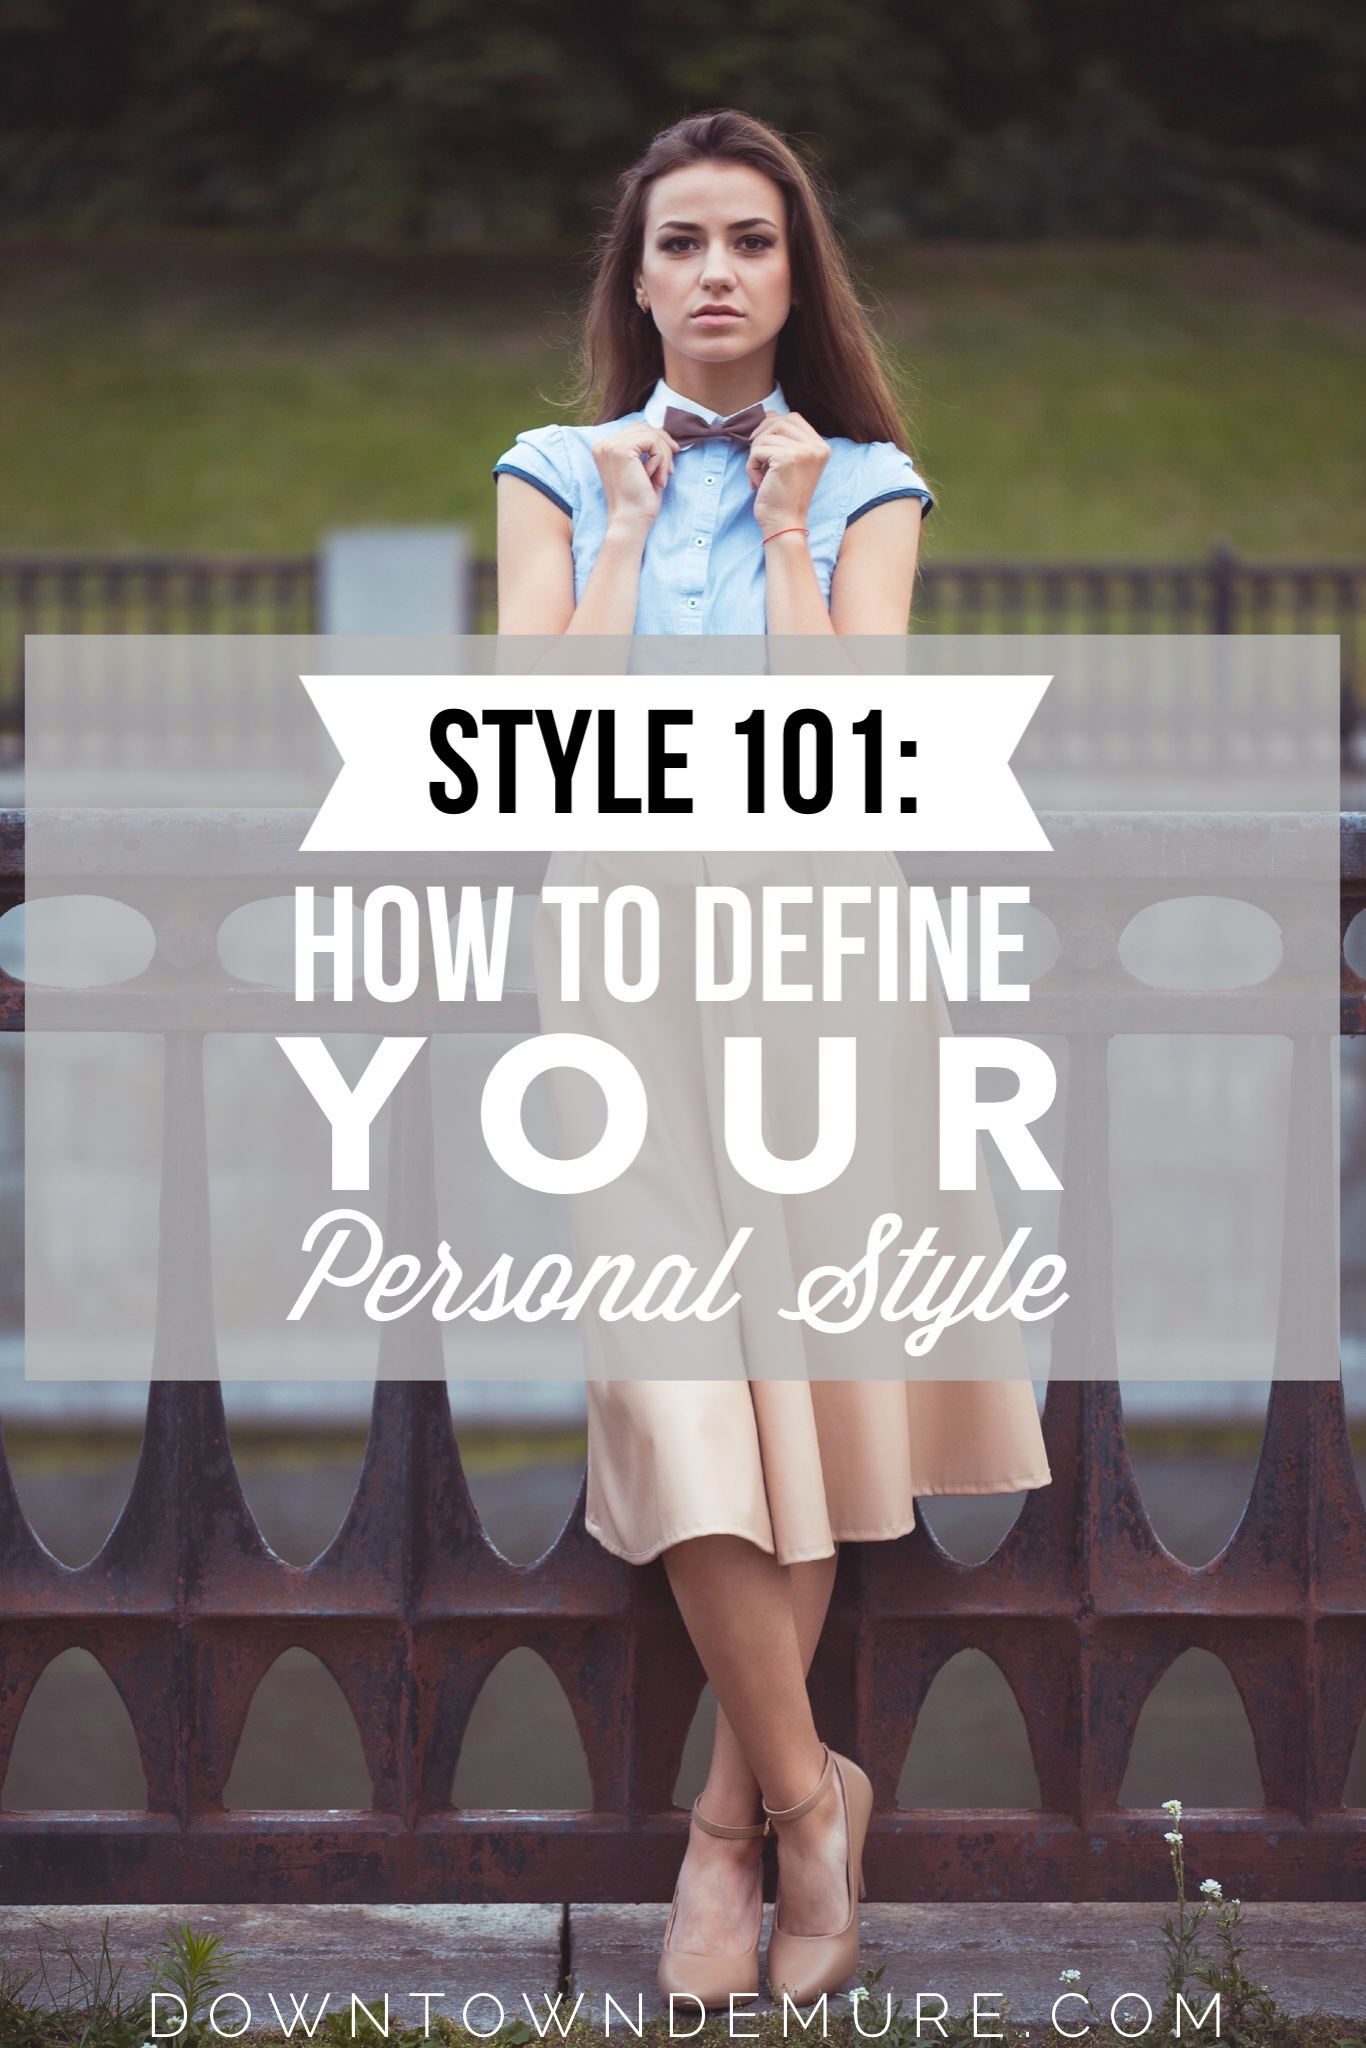 Style 101 How To Define Your Personal Style Downtown Demure